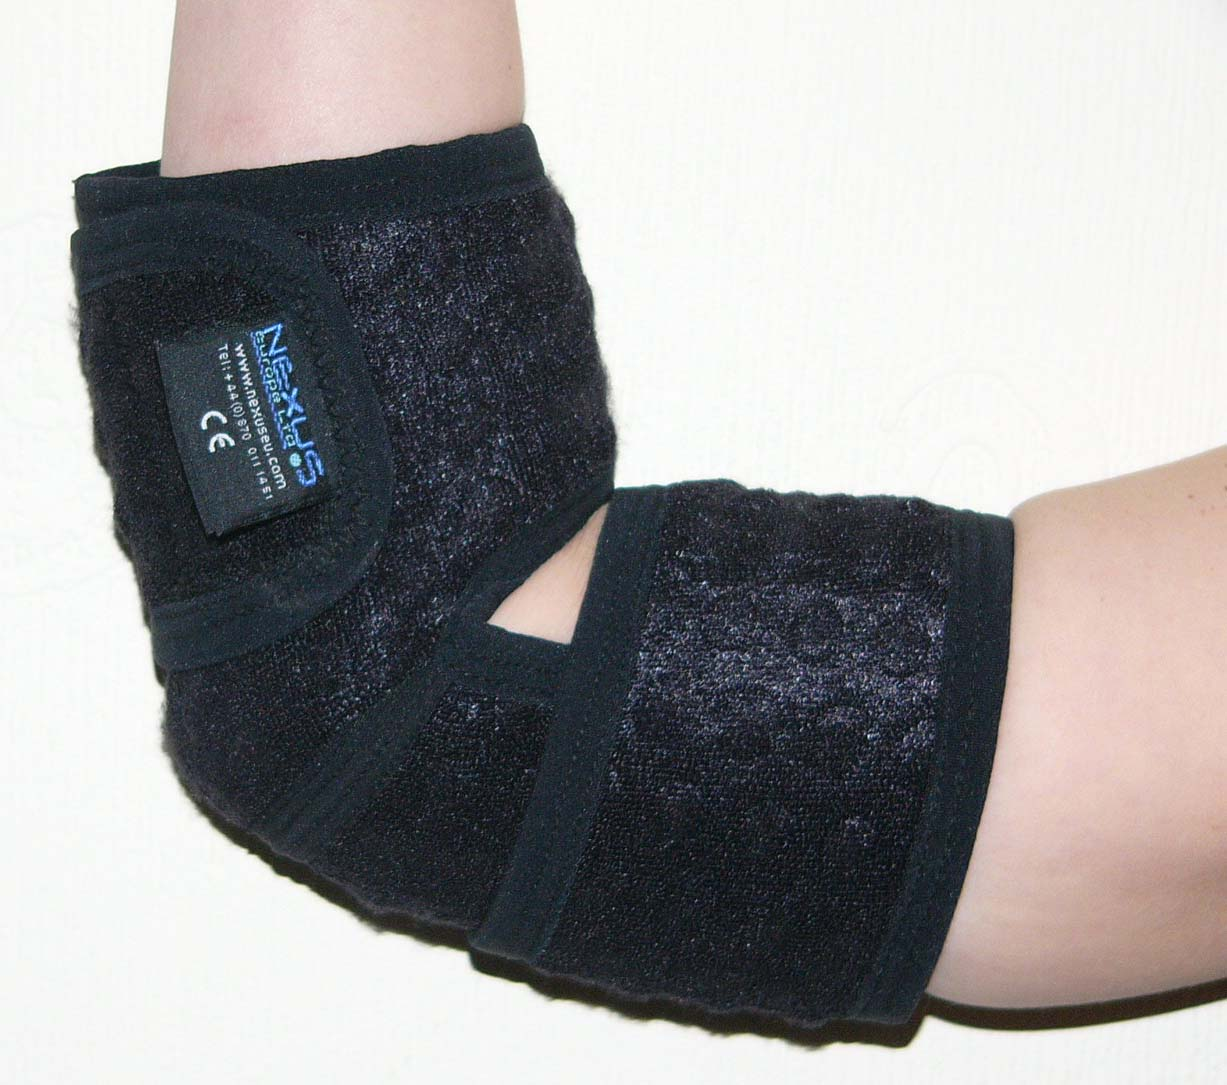 ELBOW SUPPORT & BRACE - BREATHABLE - £15.95 - ONE SIZE FITS ALL - (fits left or right Elbow)